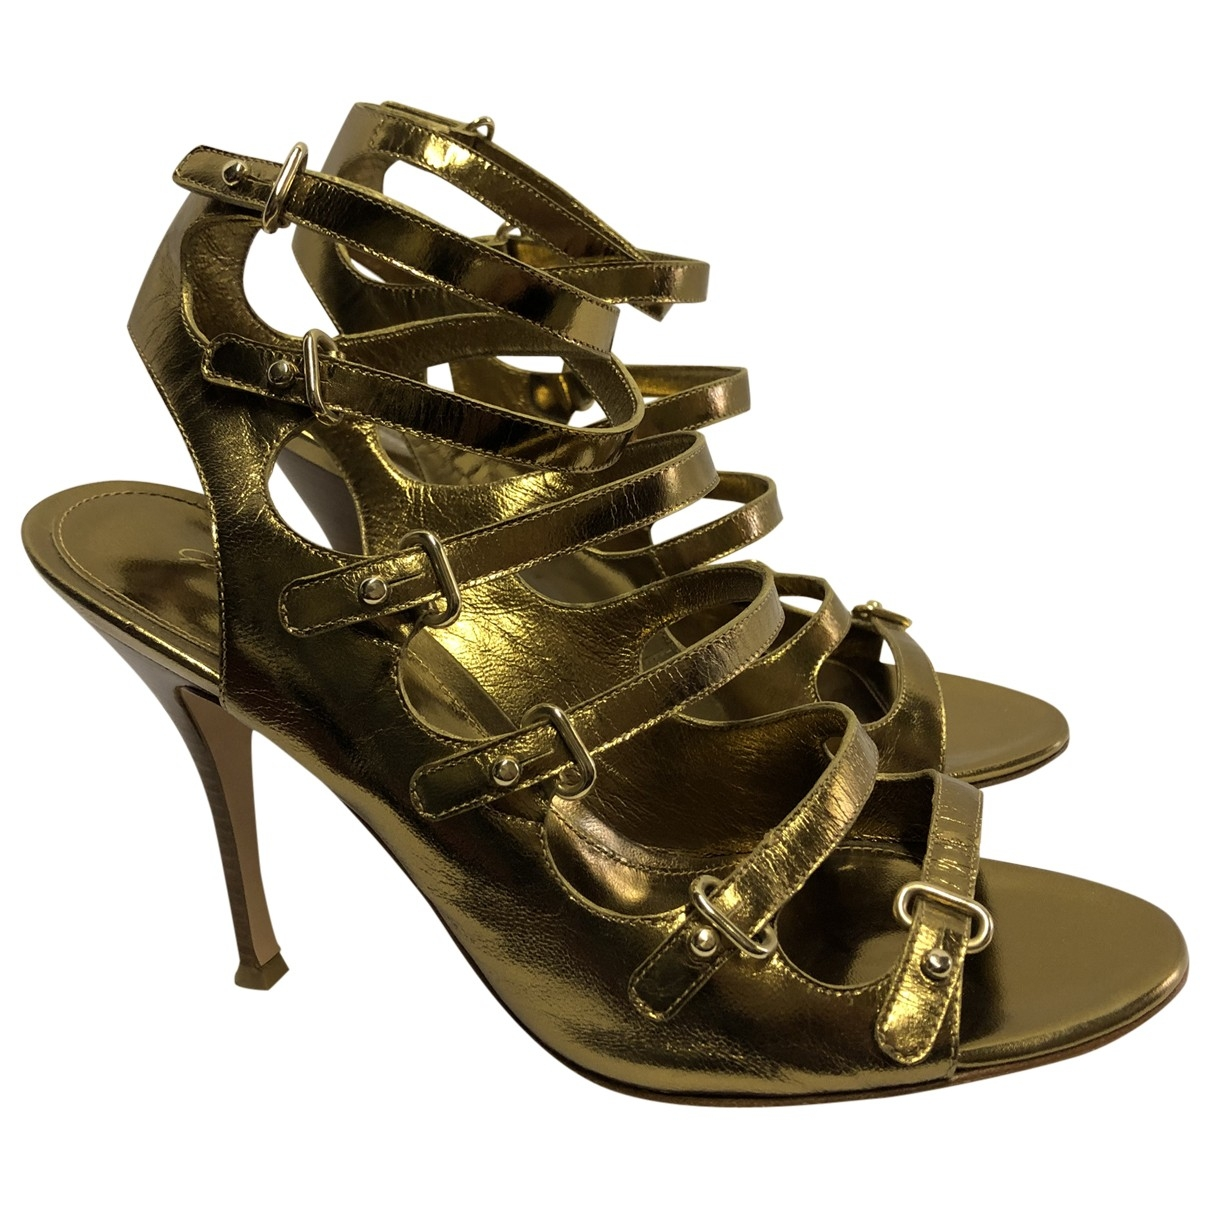 Gianvito Rossi \N Gold Leather Heels for Women 37 EU